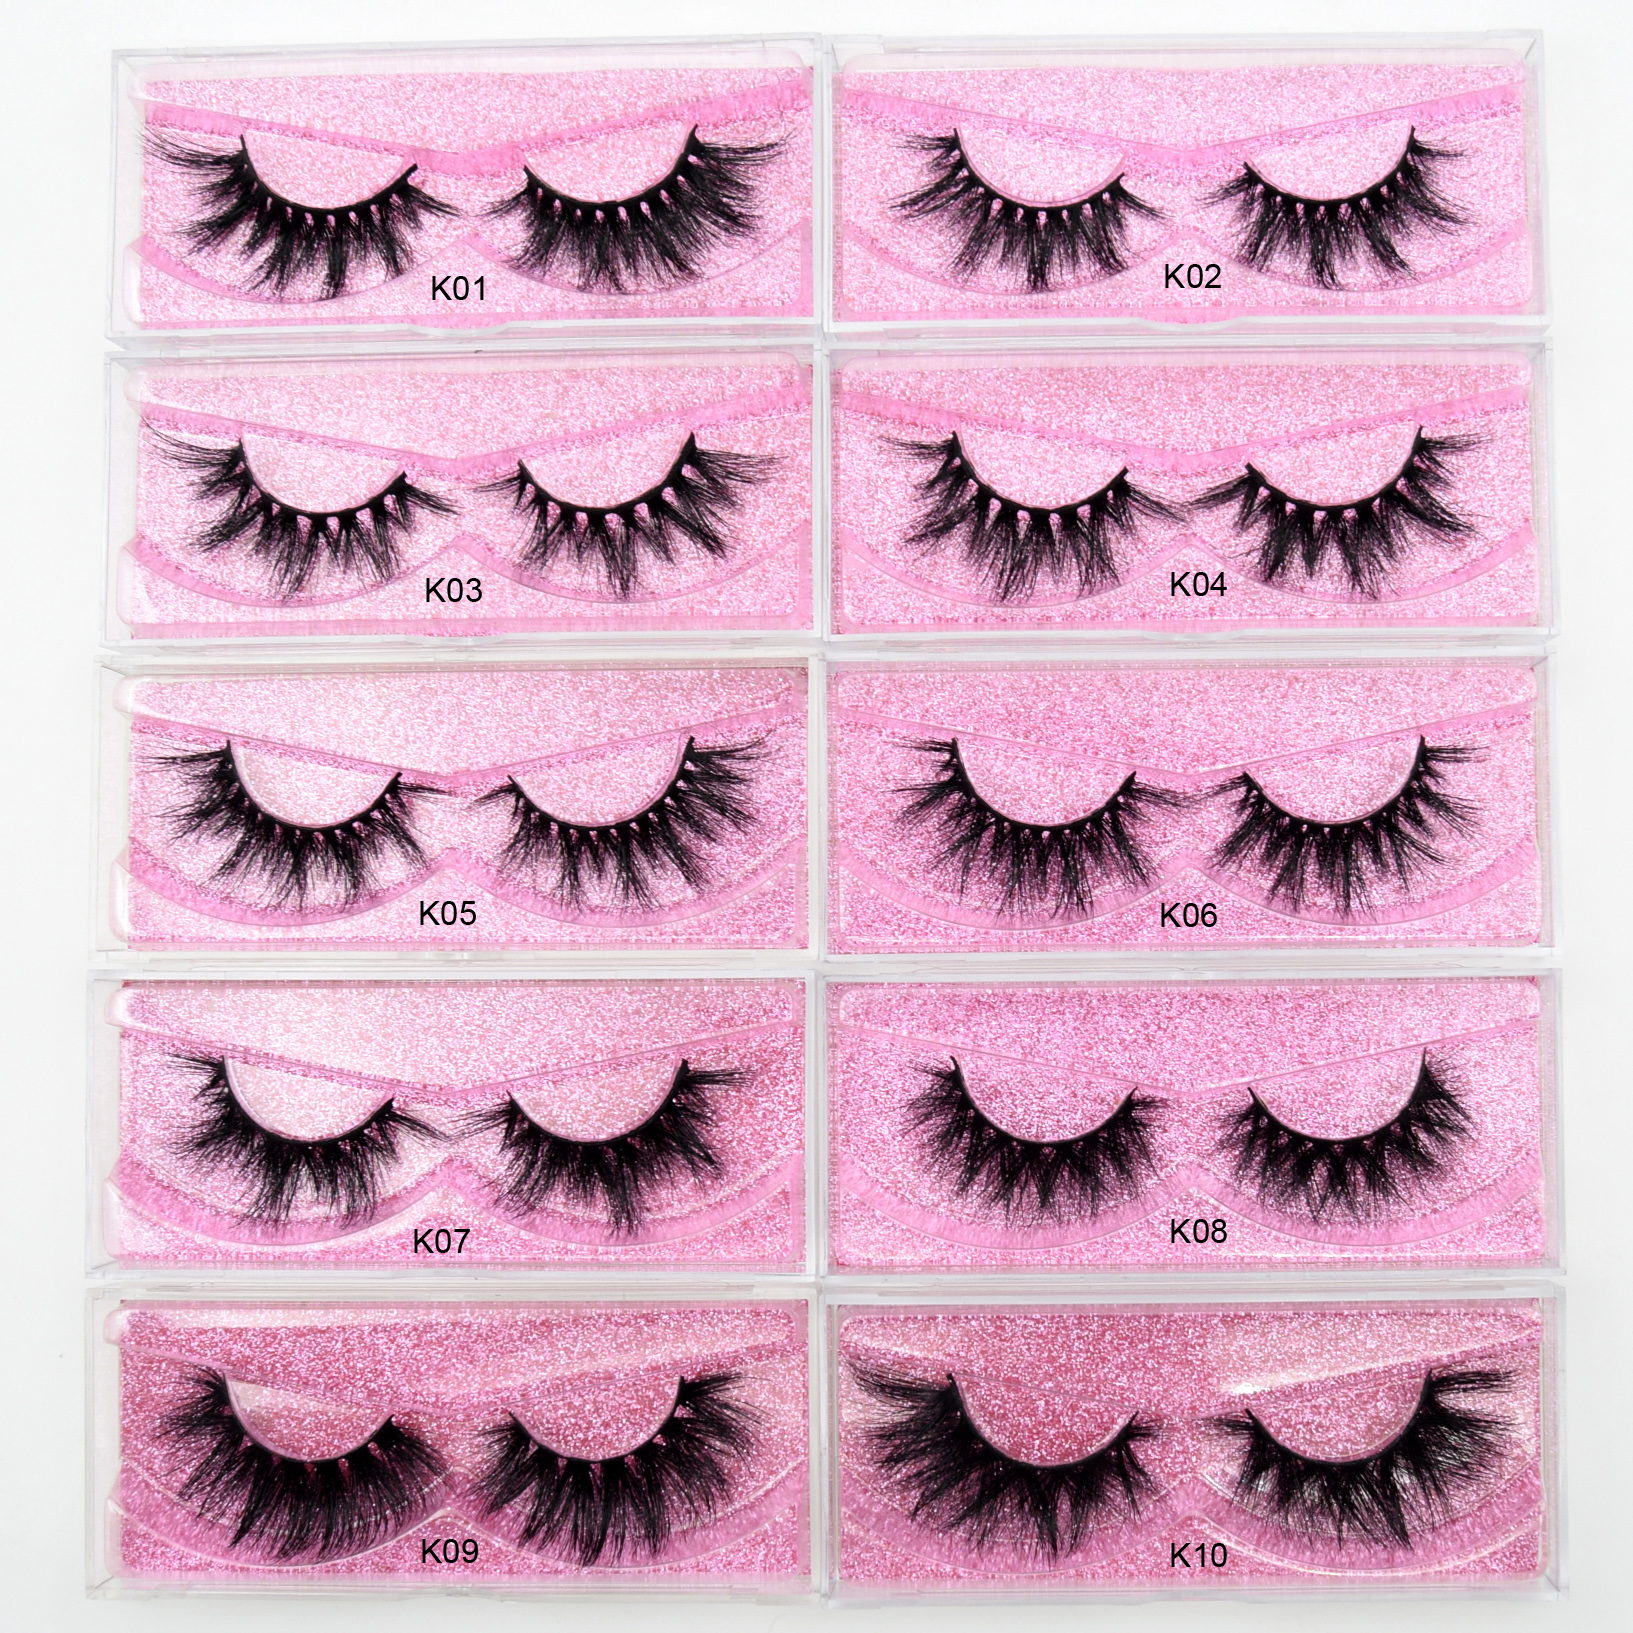 Visofree Eyelashes 3D Mink Lashes Thick Handmade Volume Soft Lashes Long Eyelash Extension Real Mink Eyelash For Makeup Lashes